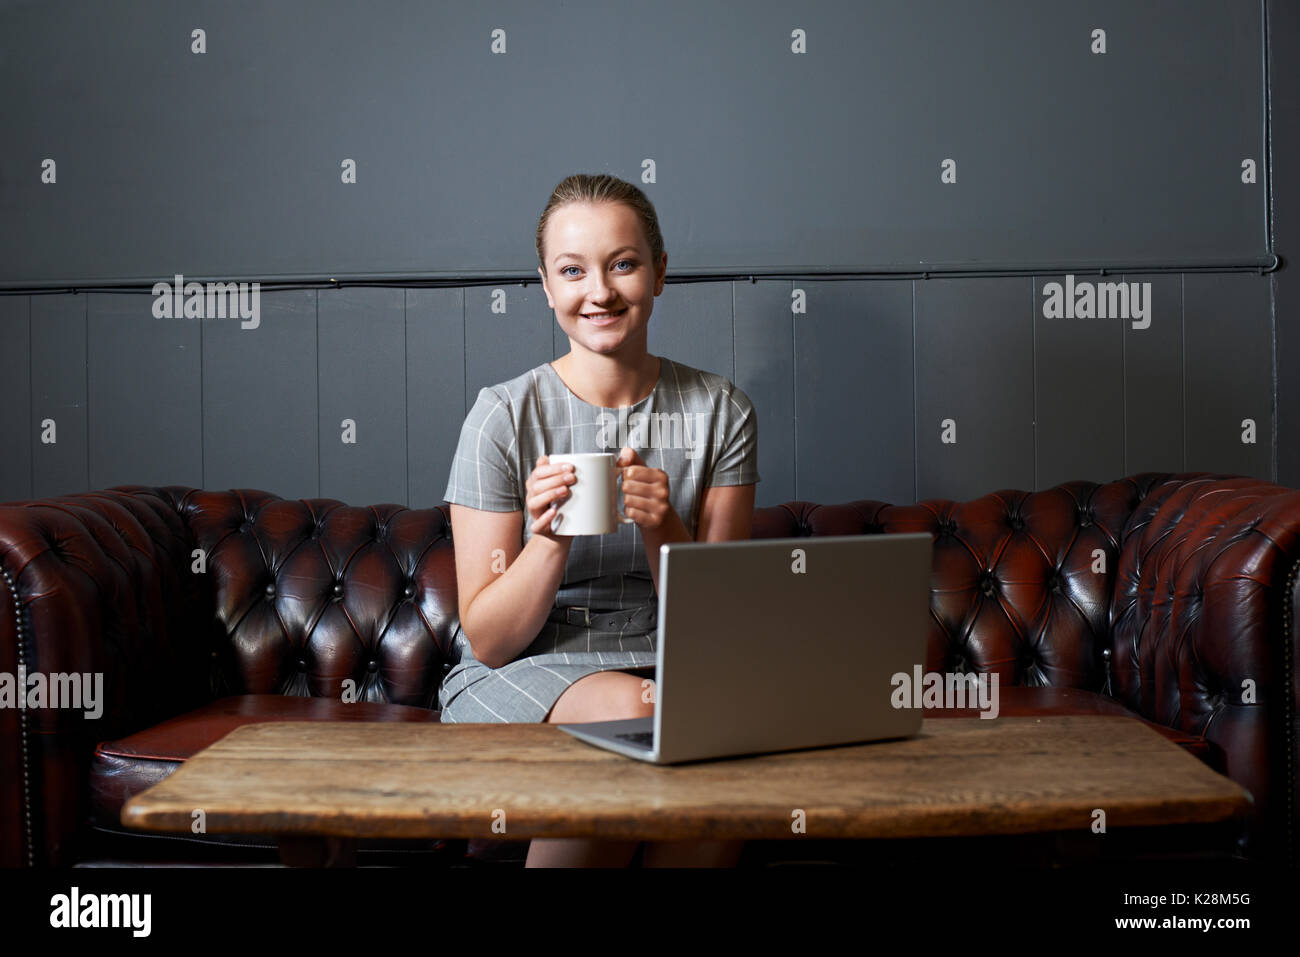 Portrait Of Businesswoman Working On Laptop In Internet Cafe Photo Stock